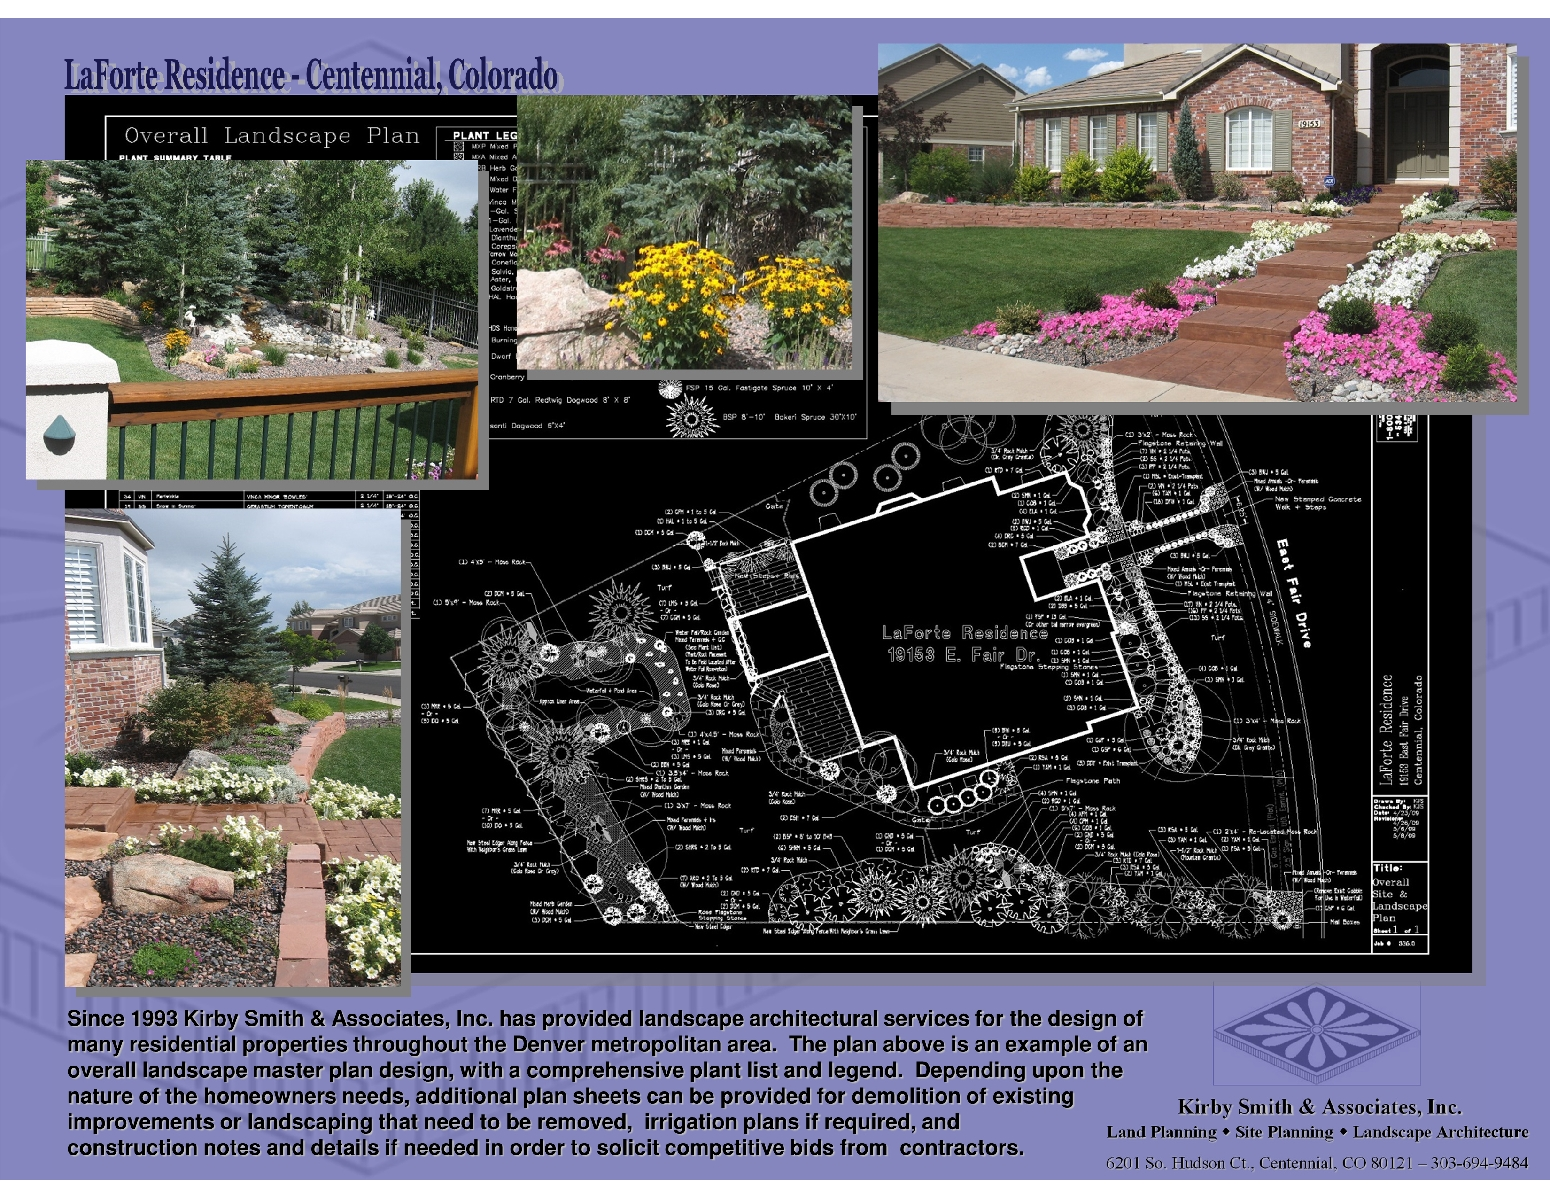 Since 1993 Kirby Smith & Associates, Inc. has provided landscape architectural services for the design of                        many residential properties throughout the Denver metropolitan area.  The plan above is an example of an  overall landscape master plan design, with a comprehensive plant list and legend.  Depending upon the       nature of the homeowners needs, additional plan sheets can be provided for demolition of existing improvements or landscaping that need to be removed,  irrigation plans if required, and                       construction notes and details if needed in order to solicit competitive bids from  contractors.